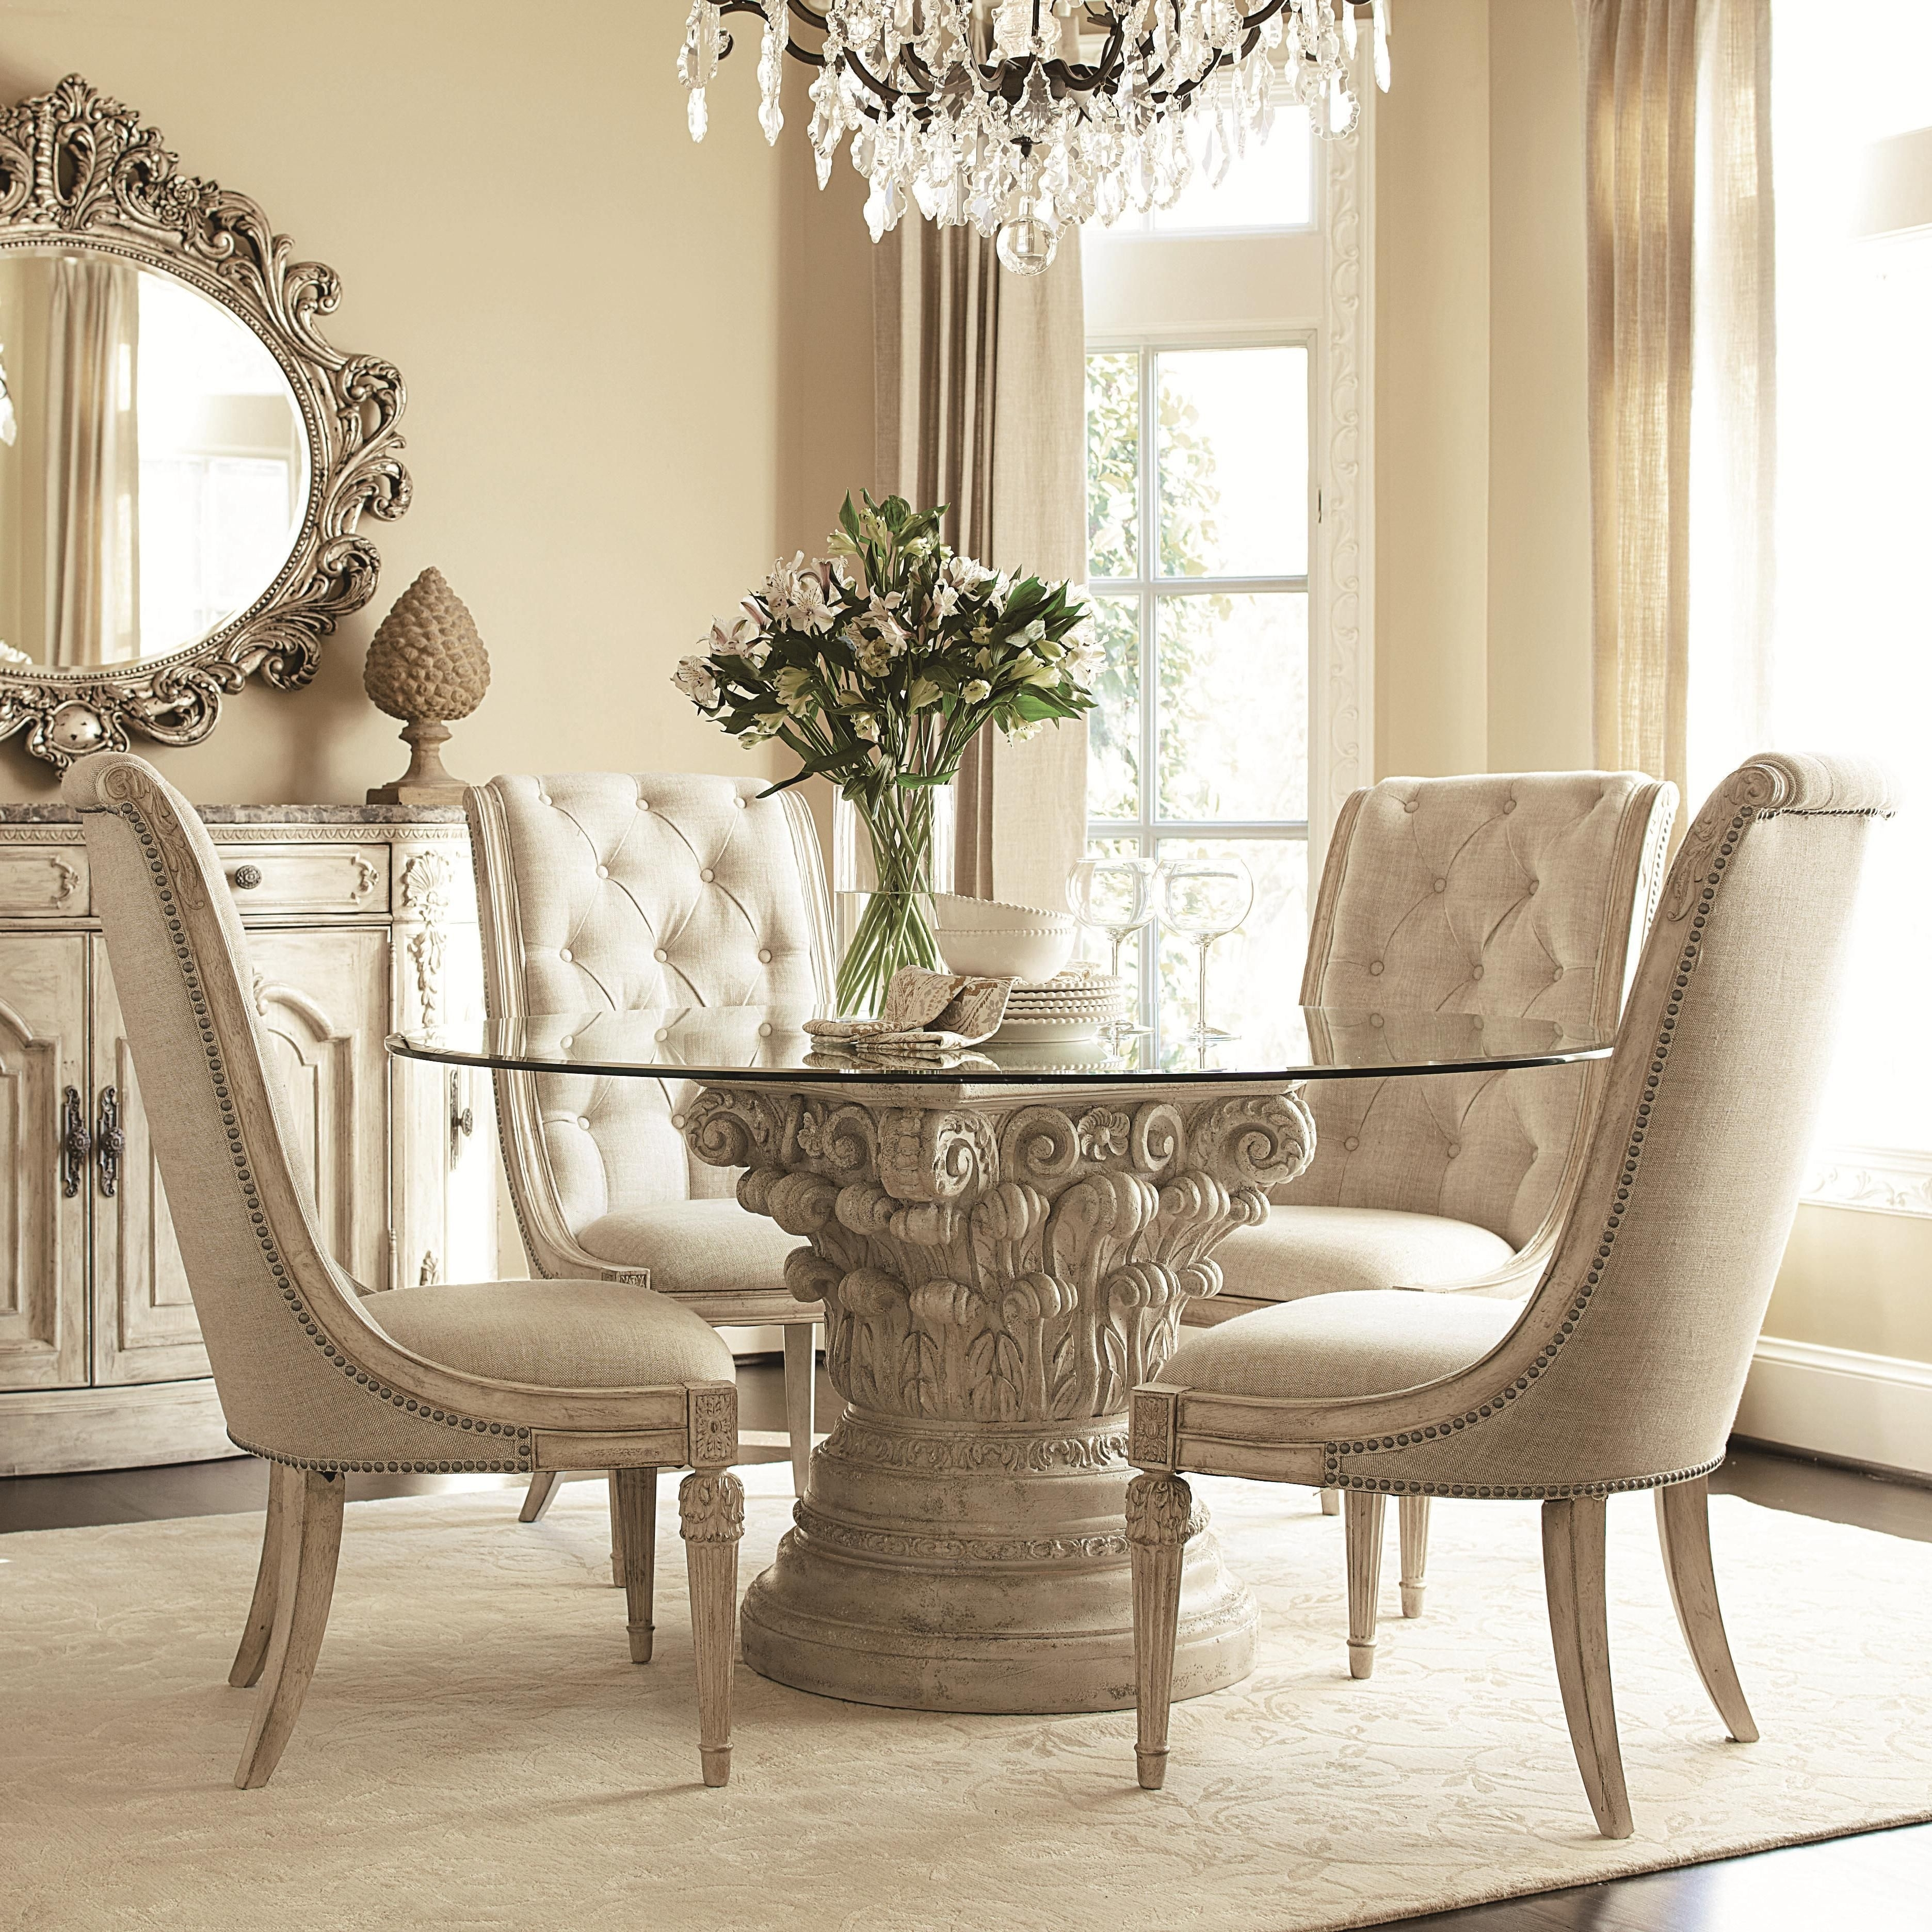 Jessica Mcclintock Home – The Boutique Collection 5 Piece Round With Best And Newest Laurent 5 Piece Round Dining Sets With Wood Chairs (Photo 7 of 20)